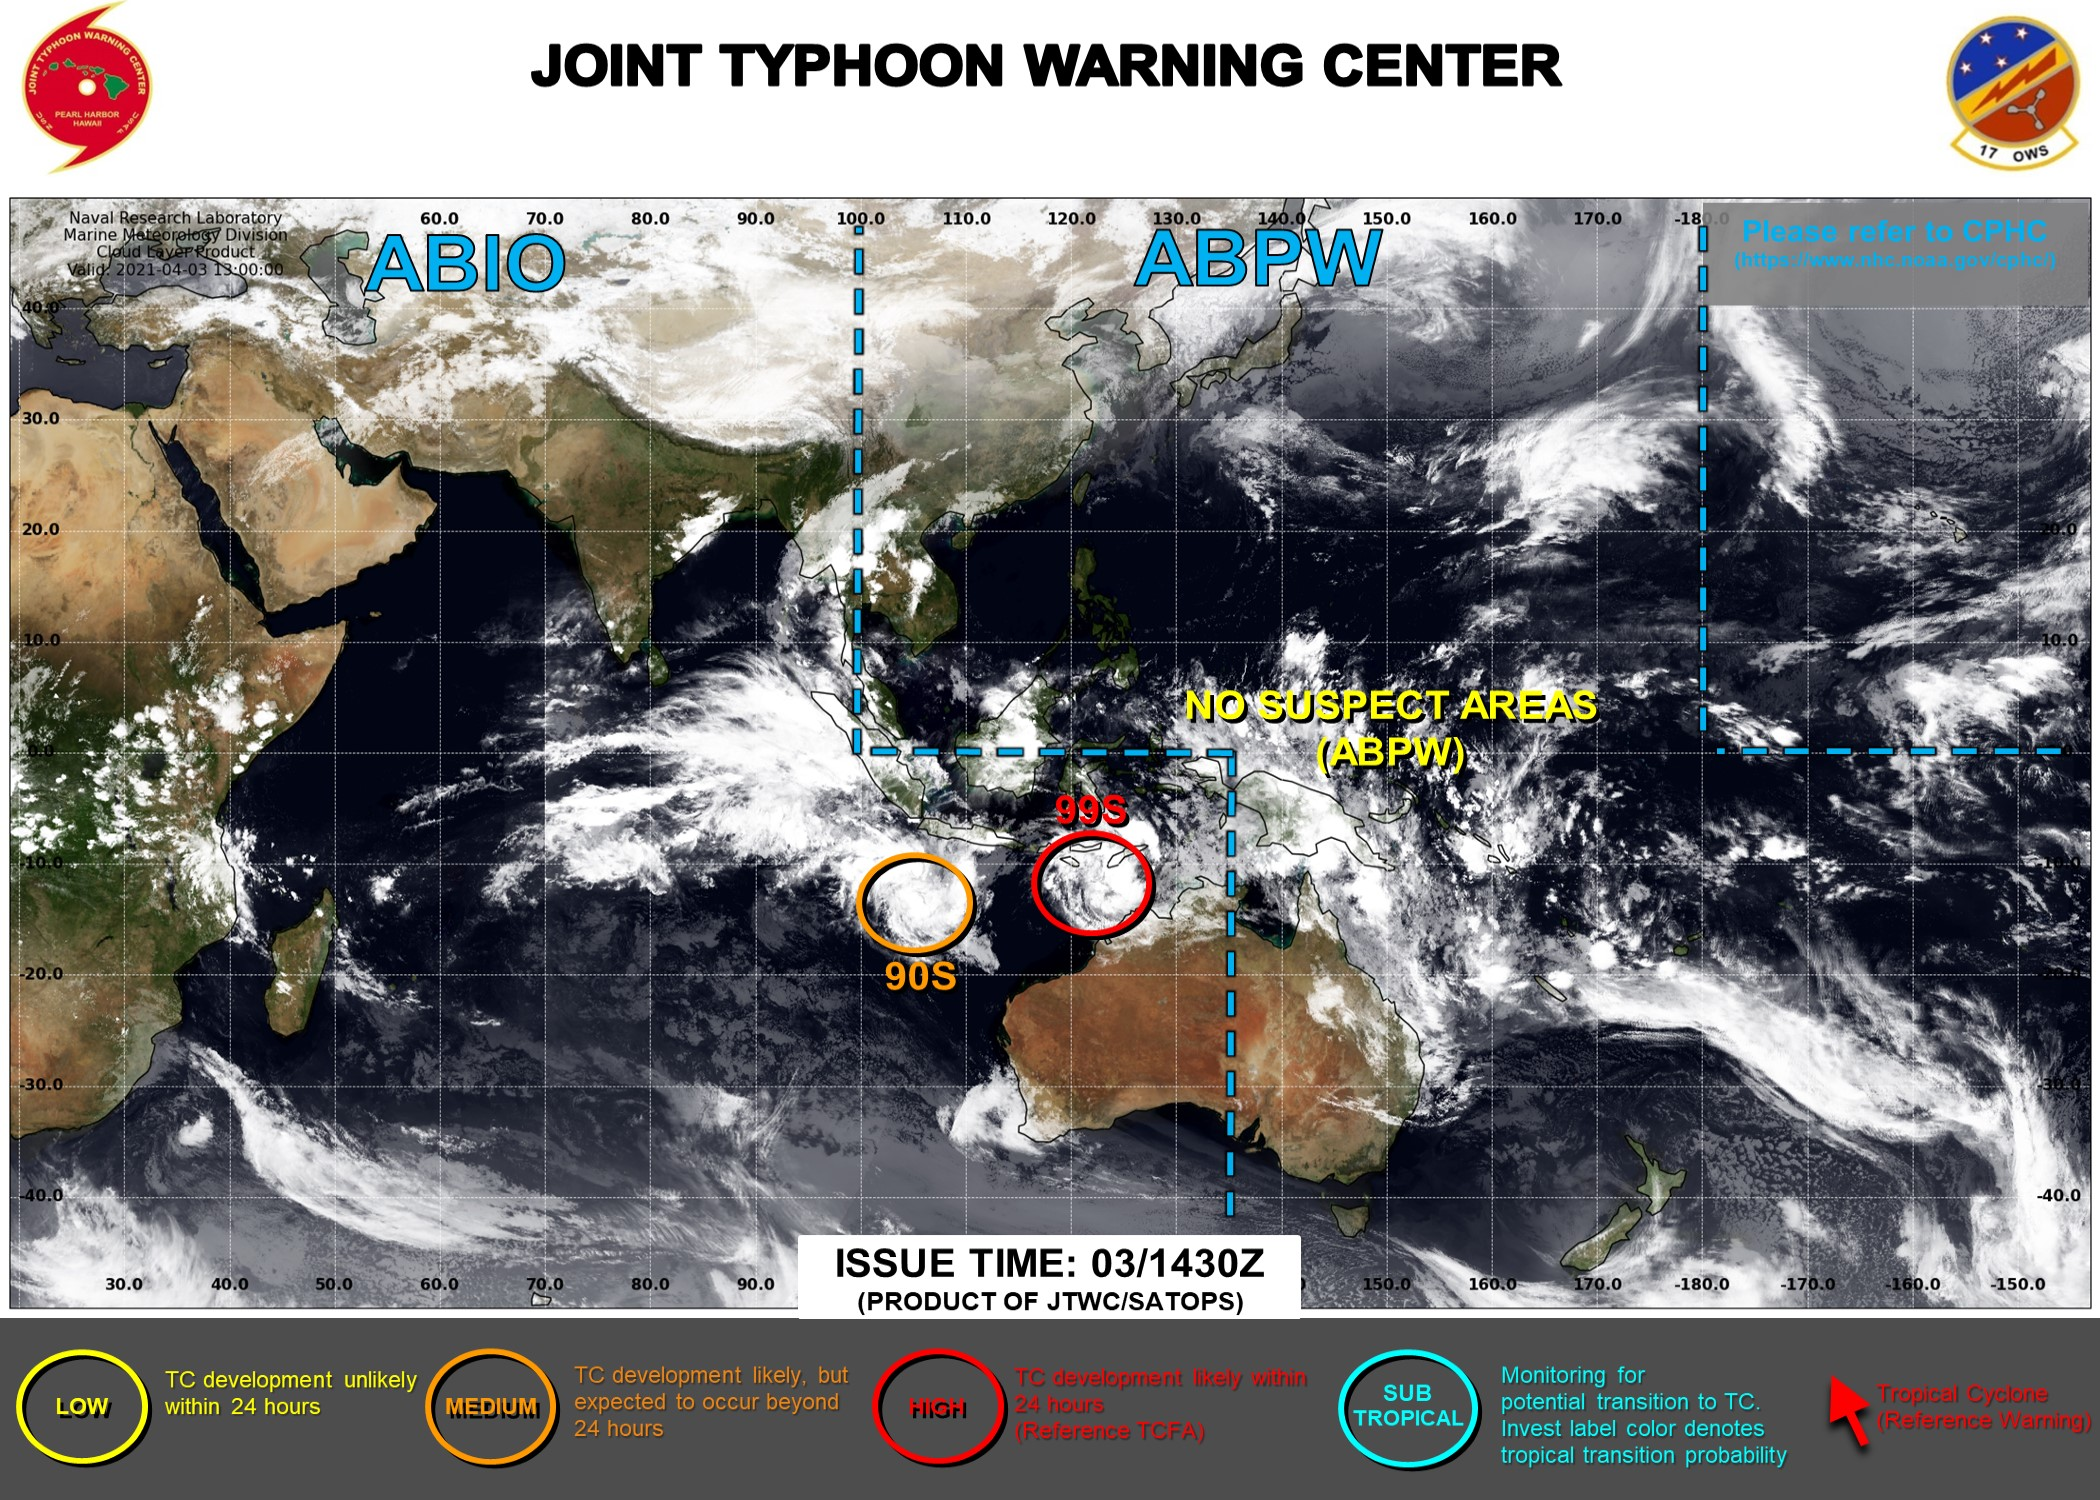 03/1430UTC. INVEST 99S IS UP-GRADED TO HIGH: HIGH CHANCES OF REACHING 35KNOTS WITHIN 24H. INVEST 90S IS UP-GRADED TO MEDIUM. JTWC HAS BEEN ISSUING 3HOURLY SATELLITE BULLETINS ON 99S.